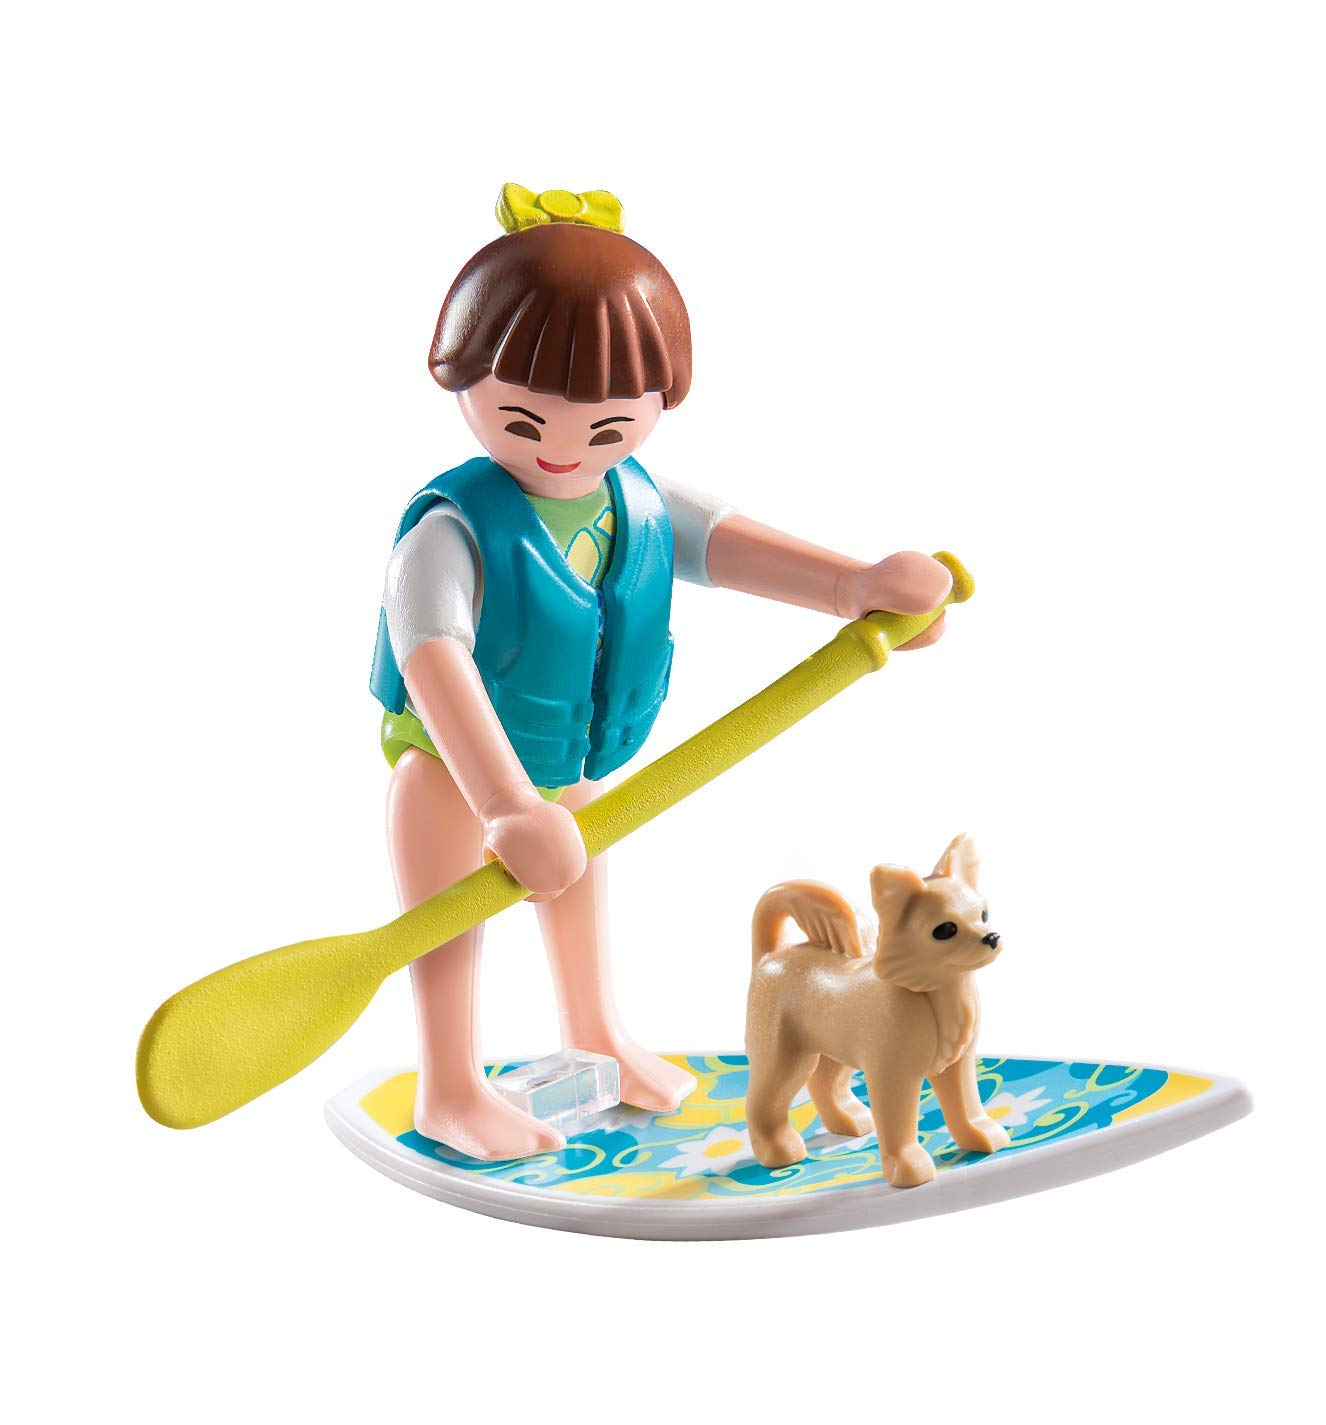 PLAYMOBIL/® Special Plus 9354 Paddleboarder